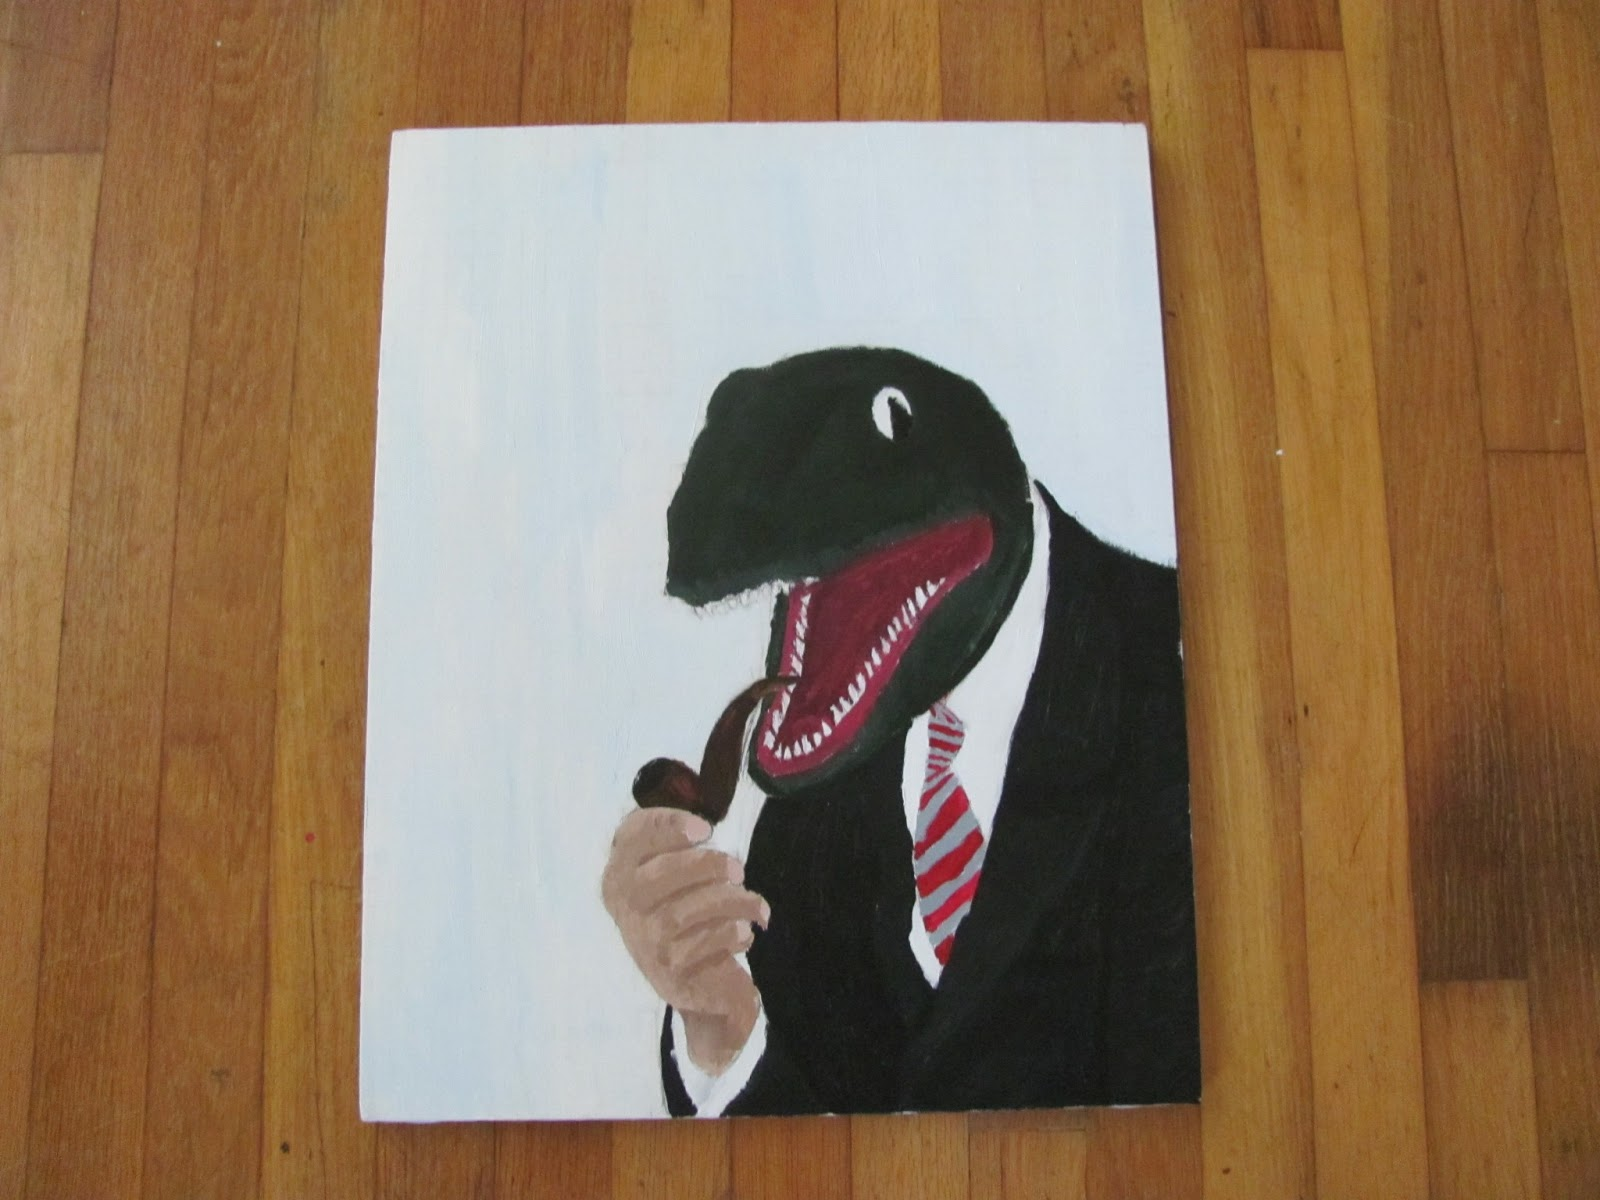 Painting of a dinosaur in a business suit smoking a pipe